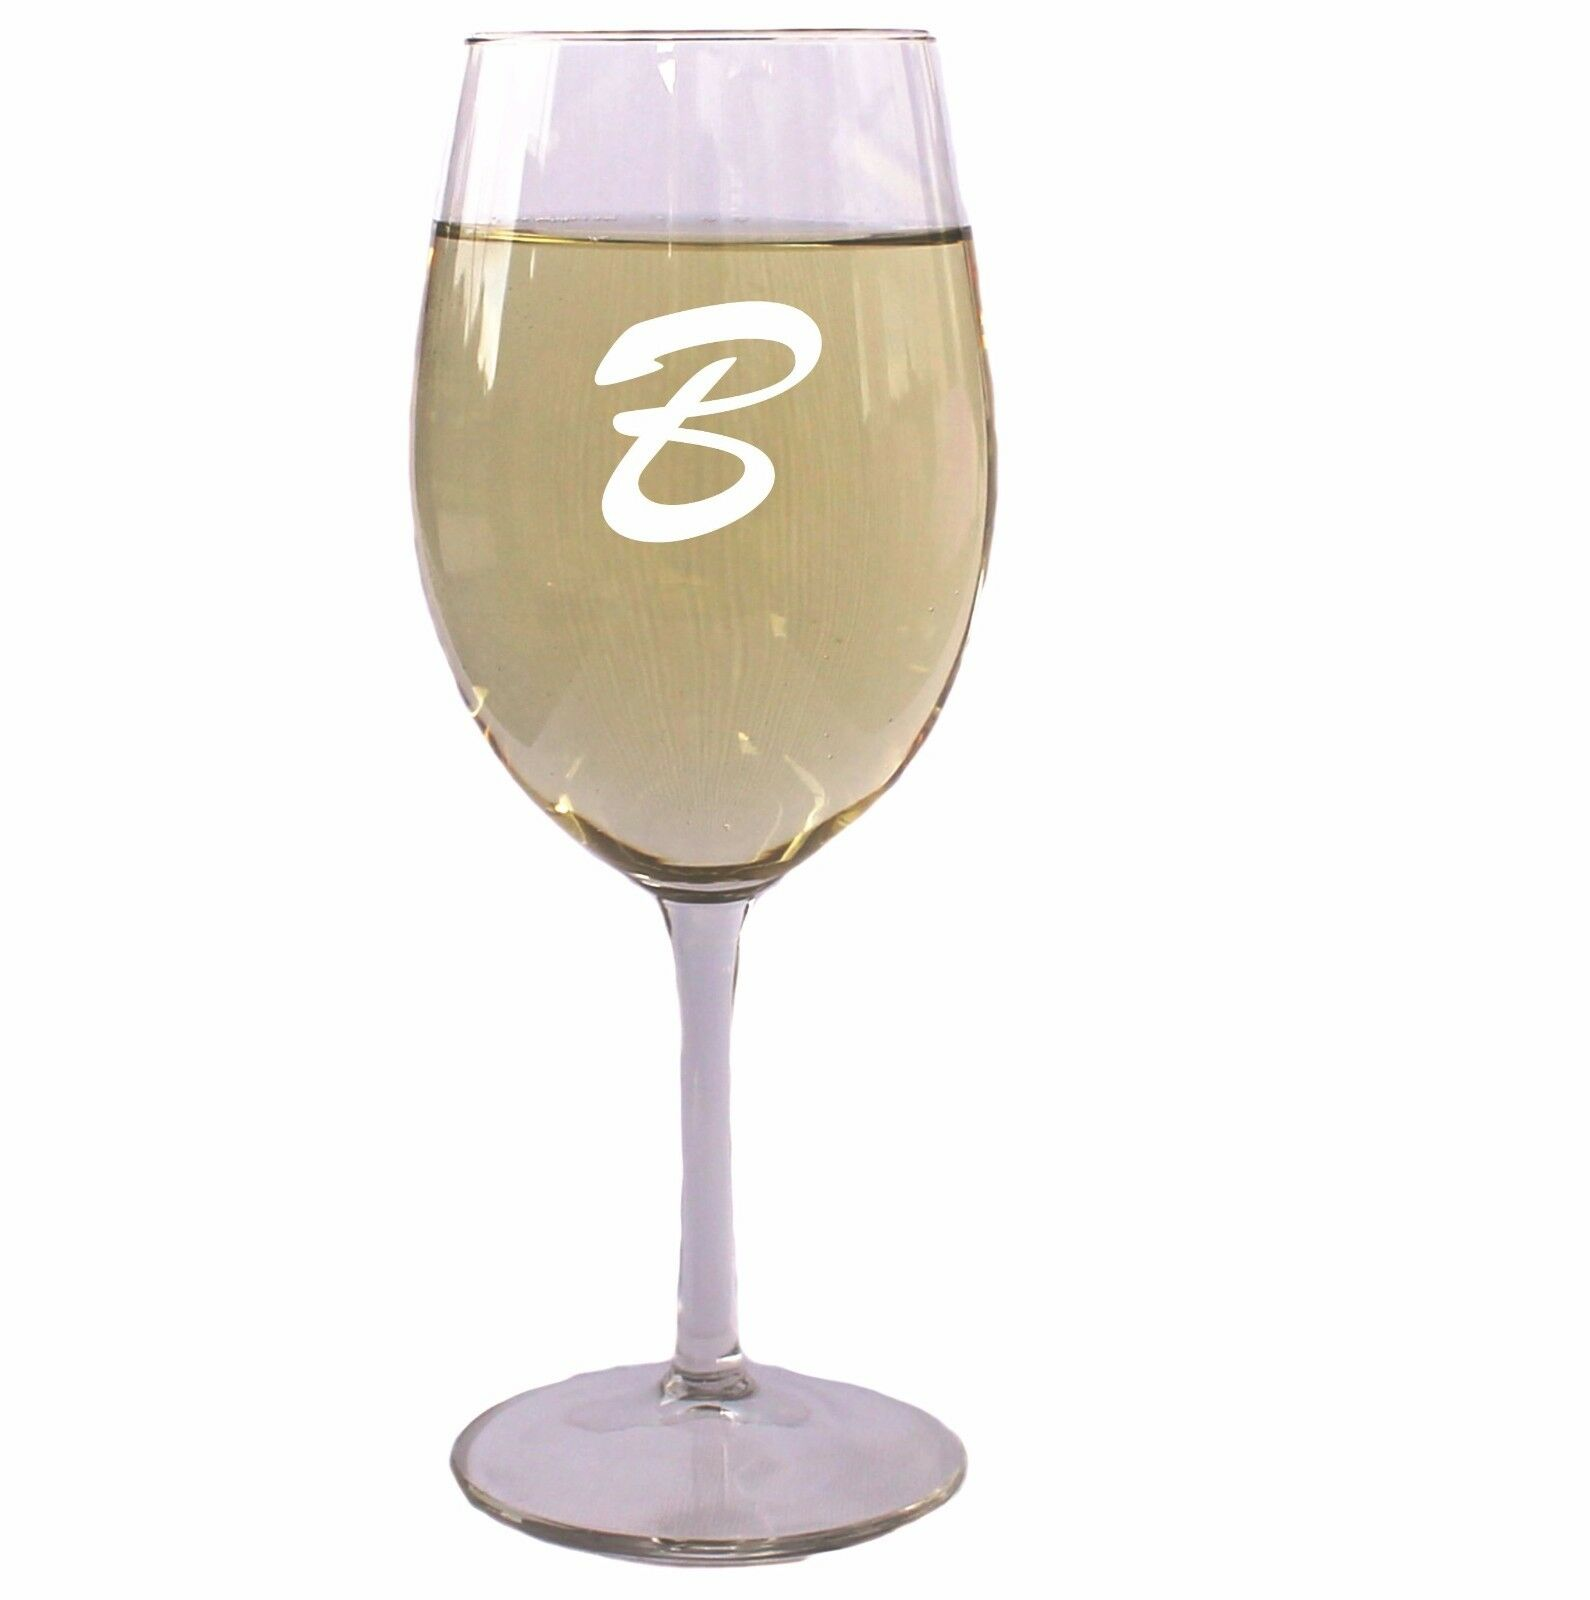 Etched Glass Wedding Gifts: Personalized 14 Oz. Wine Glass With Initial